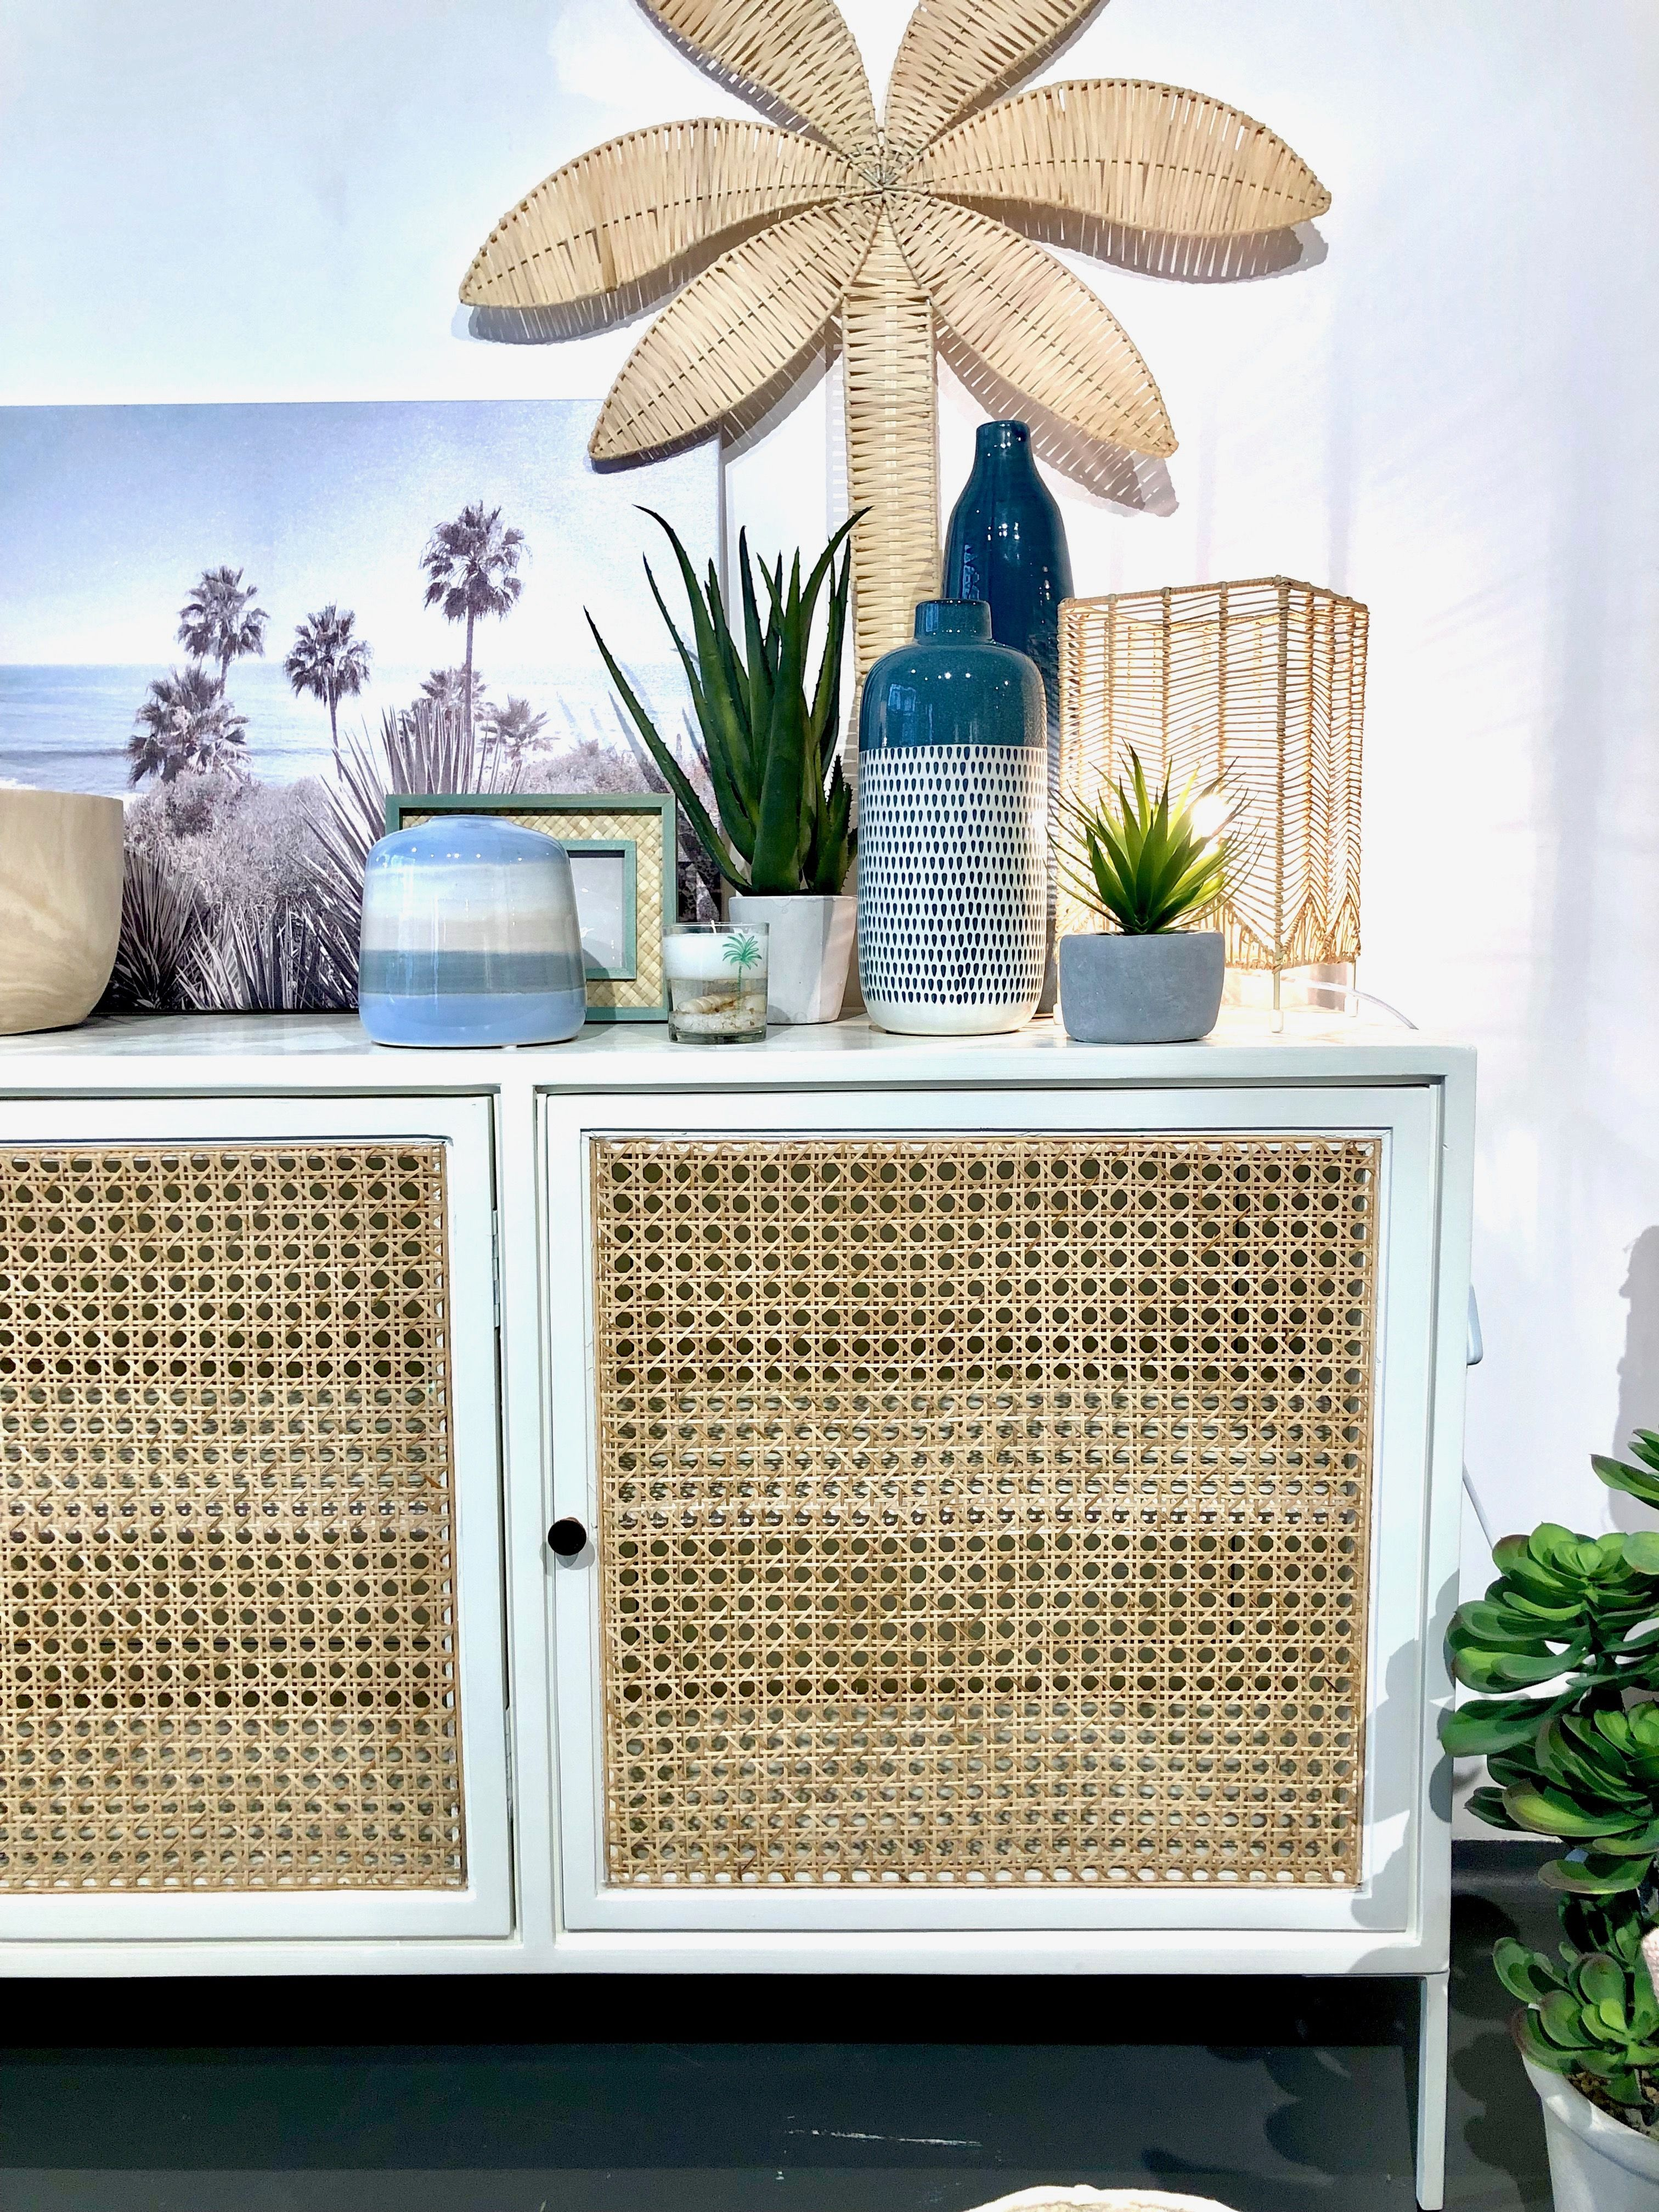 Nouveau Catalogue Maisons Du Monde 2019 Clem Around The Corner Deco Mobilier De Salon Deco Bord De Mer